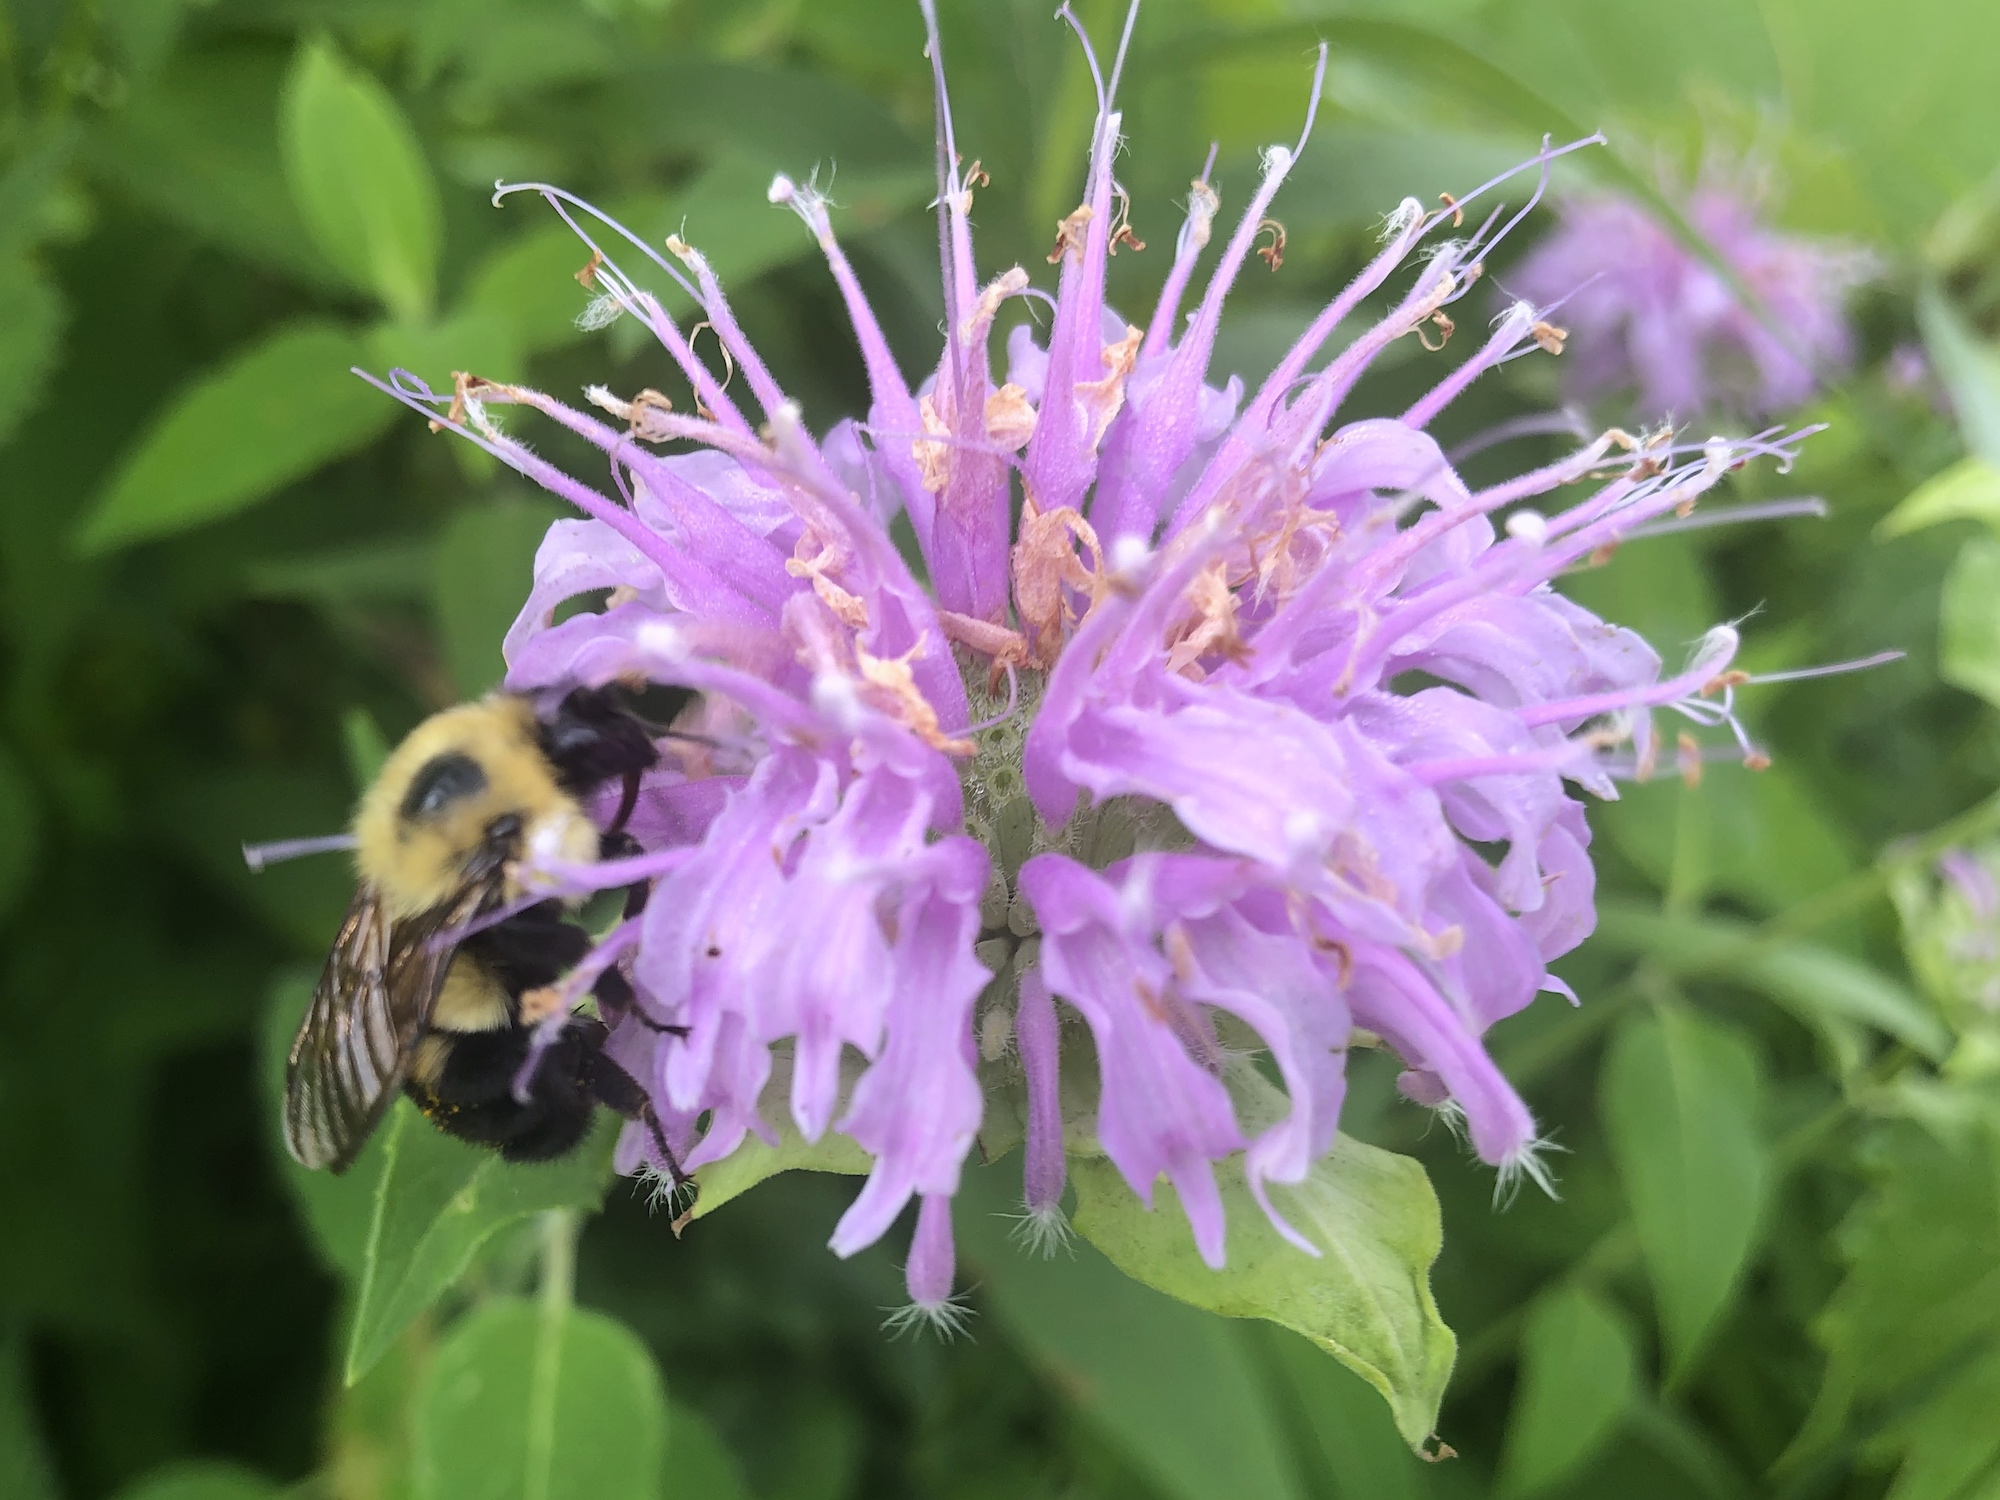 Bumblebee on Bergamot on July 9, 2020.